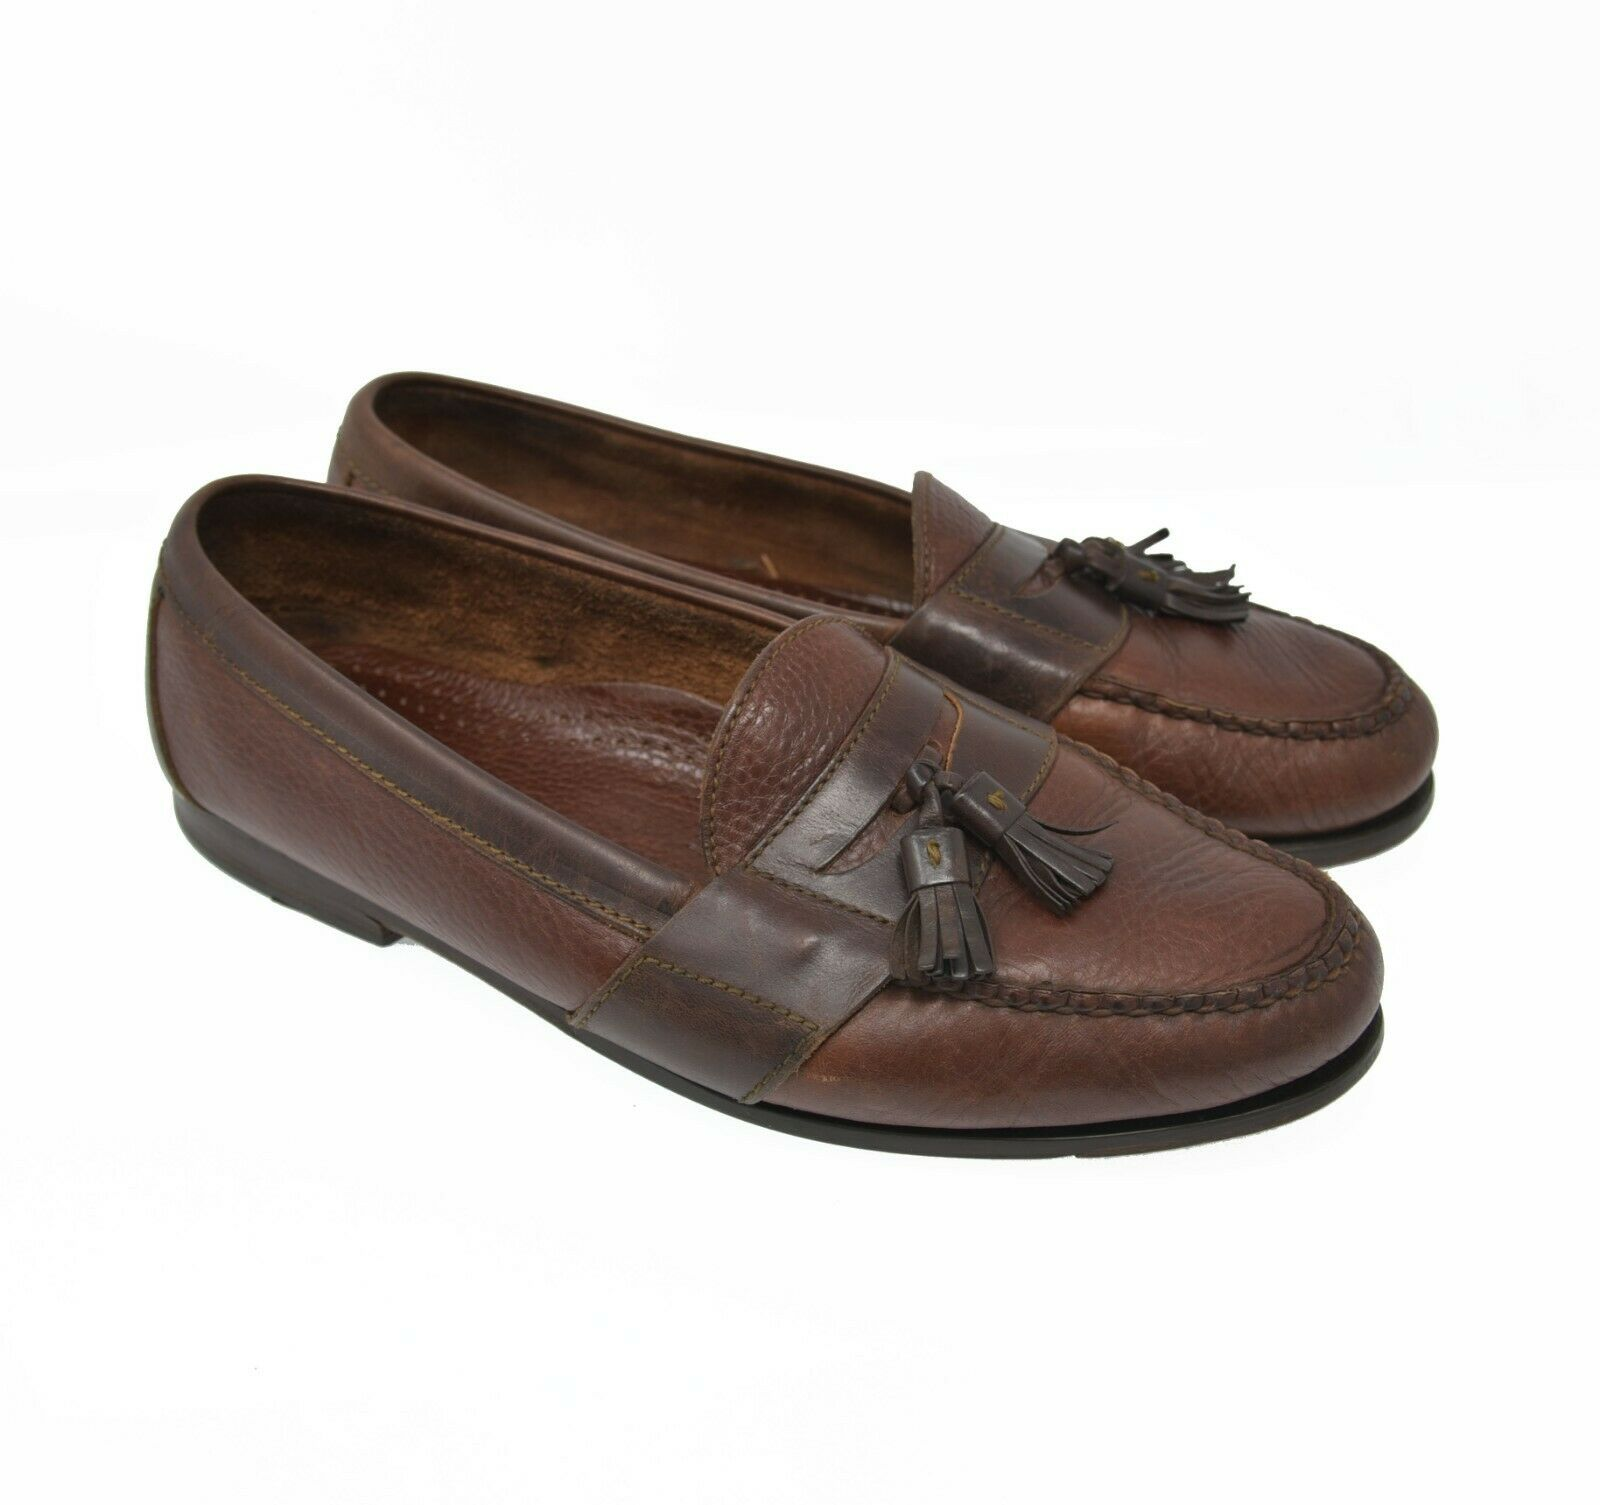 Cole Haan Country Men's Sz 11 EU 43 Brown Leather Slip On Tassel Penny Loafers